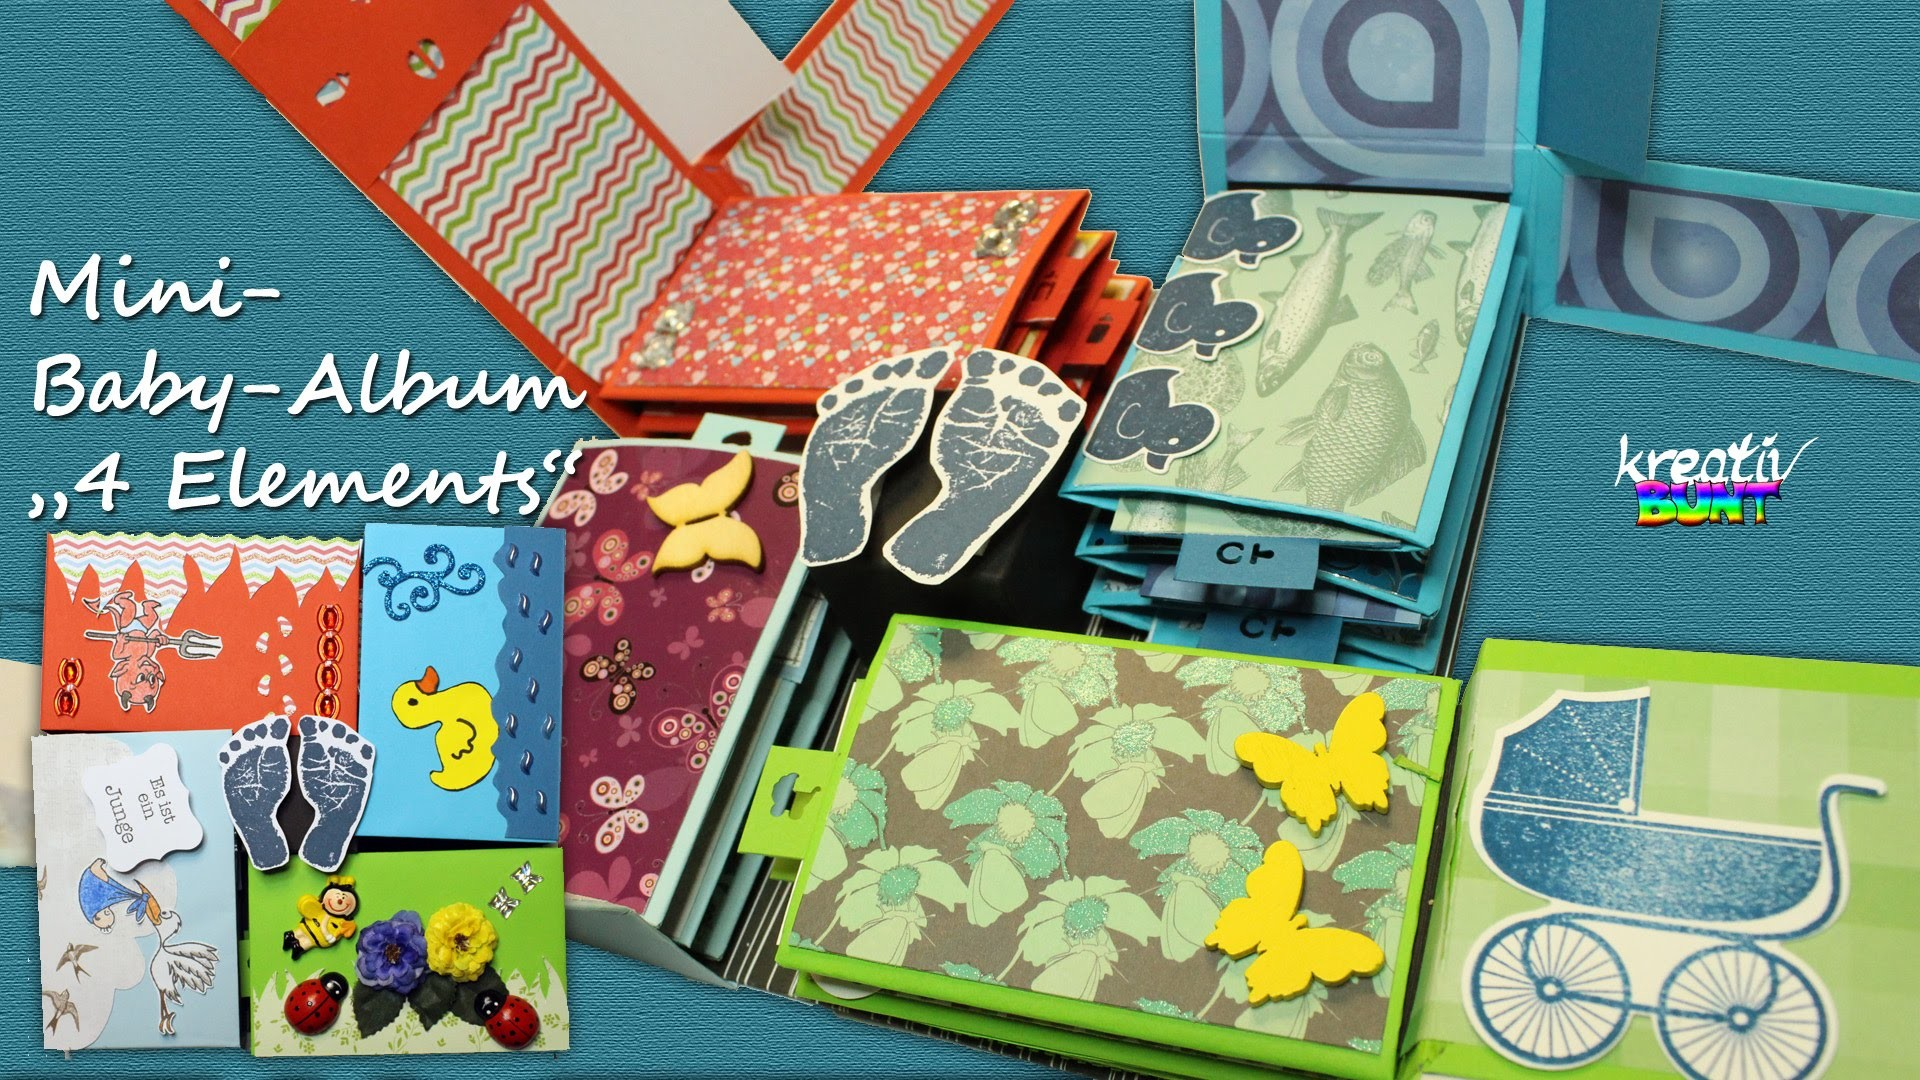 "DIY Scrapbook Tutorial: Mini-Album. Baby-Album ""4 Elements"" 